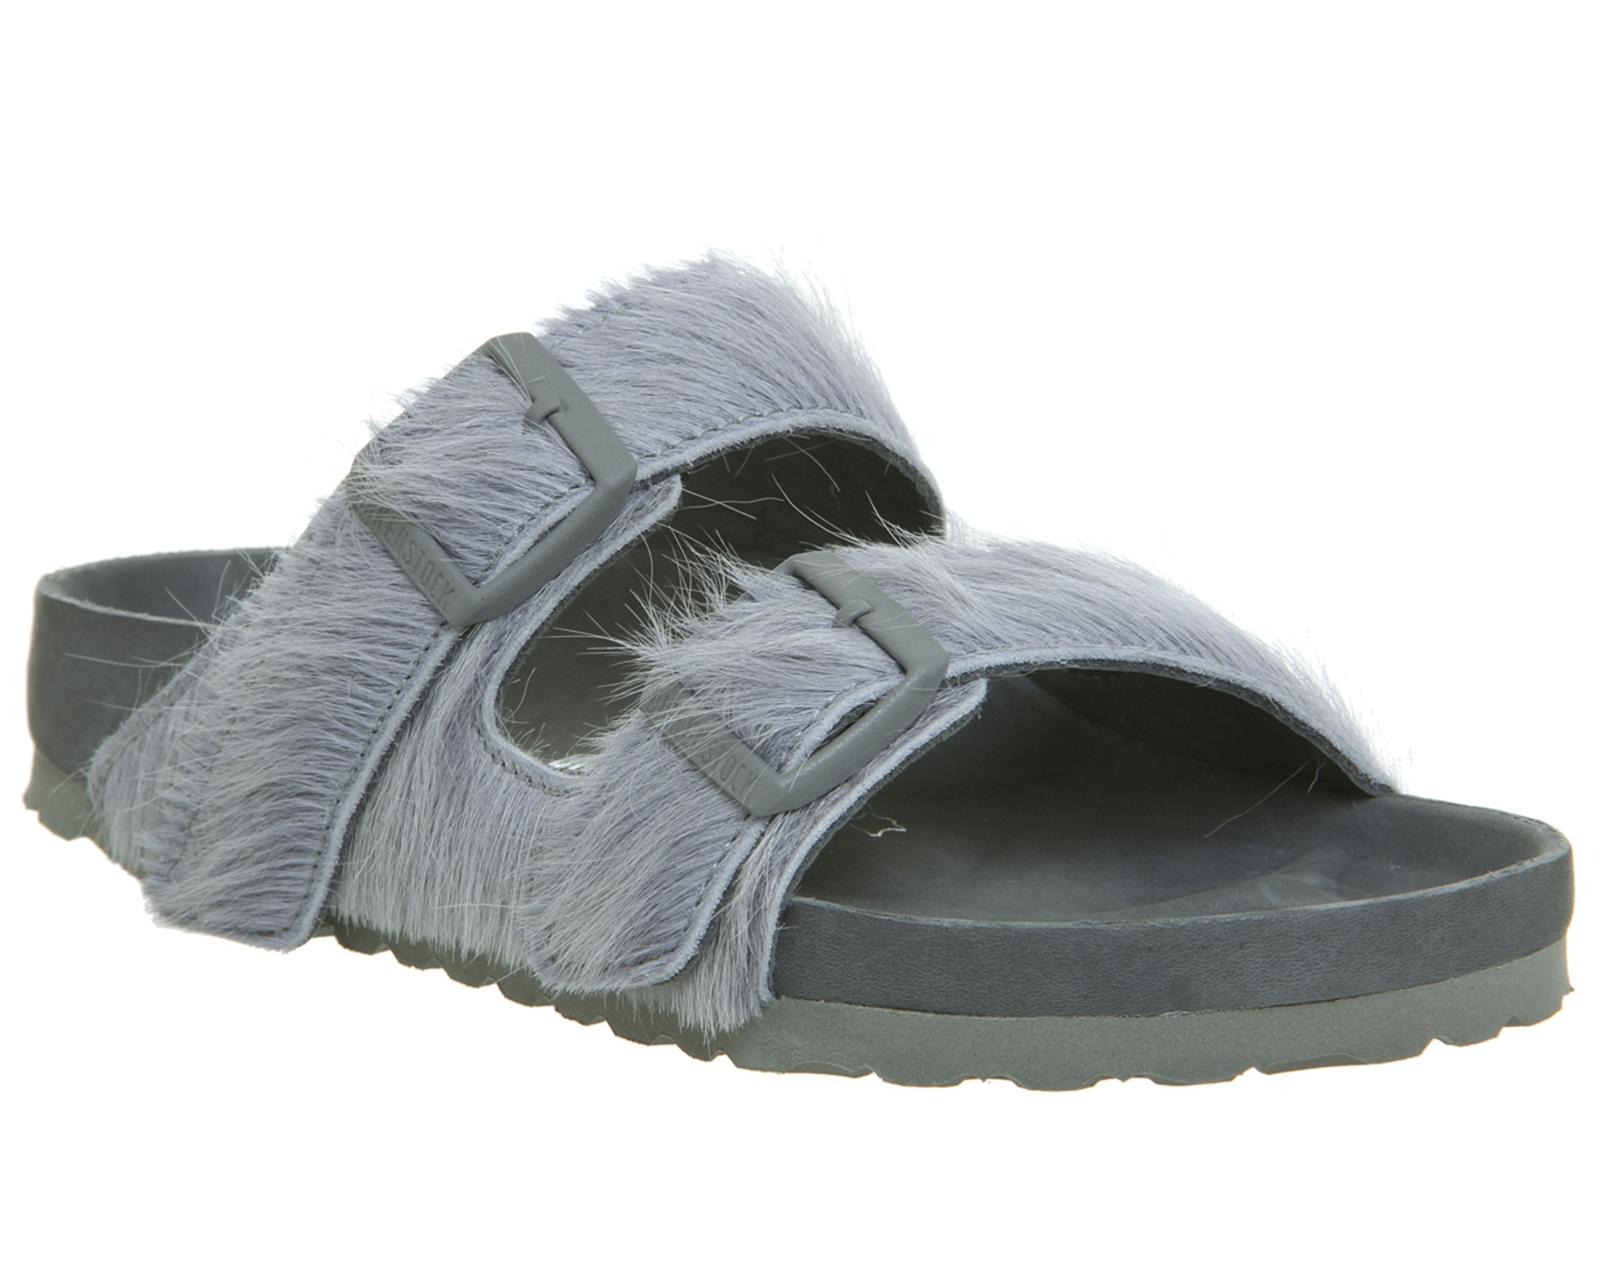 8711e65be66e Rick Owens Ro Arizona Two Strap Sandals in Gray for Men - Lyst